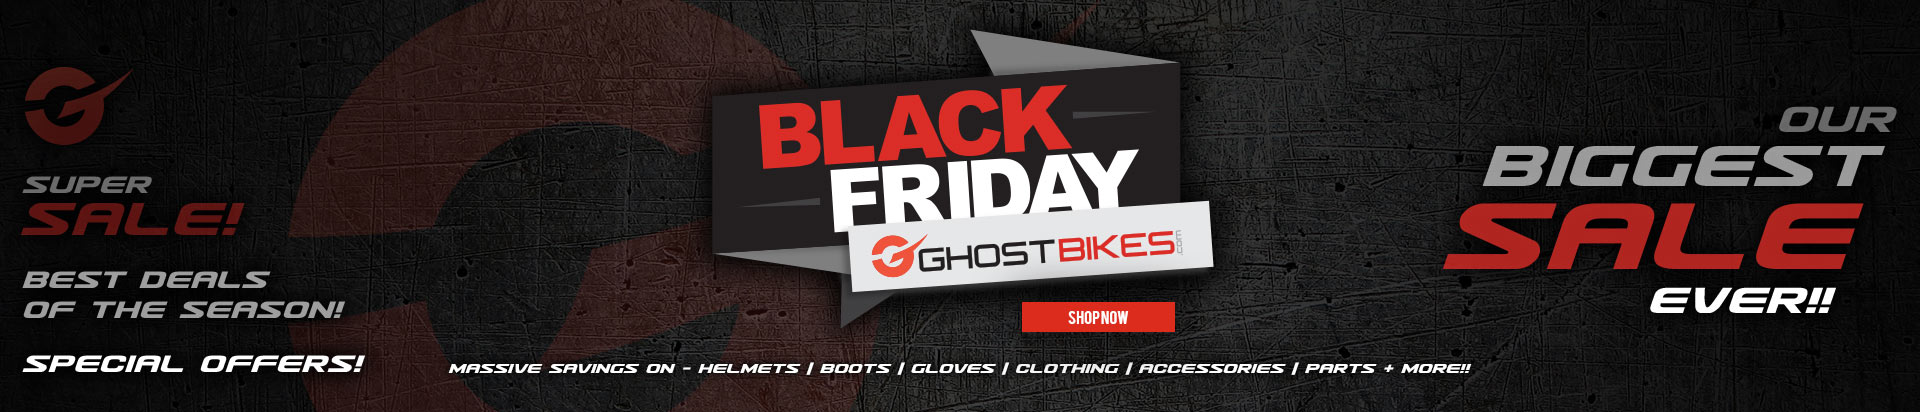 Black Friday Motorcycle Deals